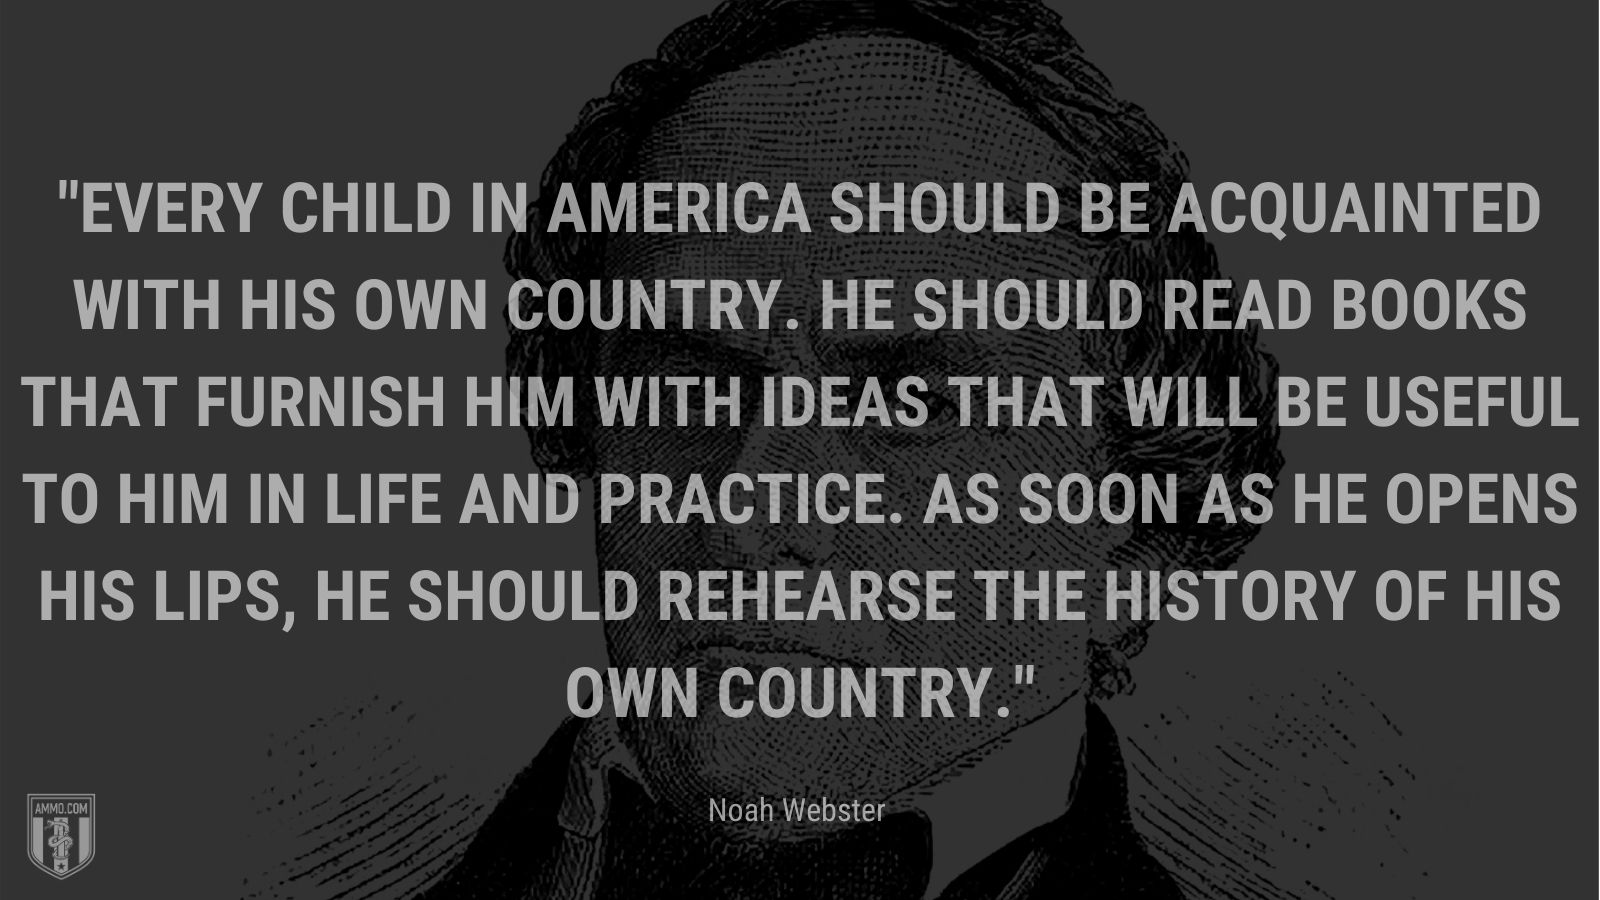 """""""Every child in America should be acquainted with his own country. He should read books that furnish him with ideas that will be useful to him in life and practice. As soon as he opens his lips, he should rehearse the history of his own country."""" - Noah Webster"""